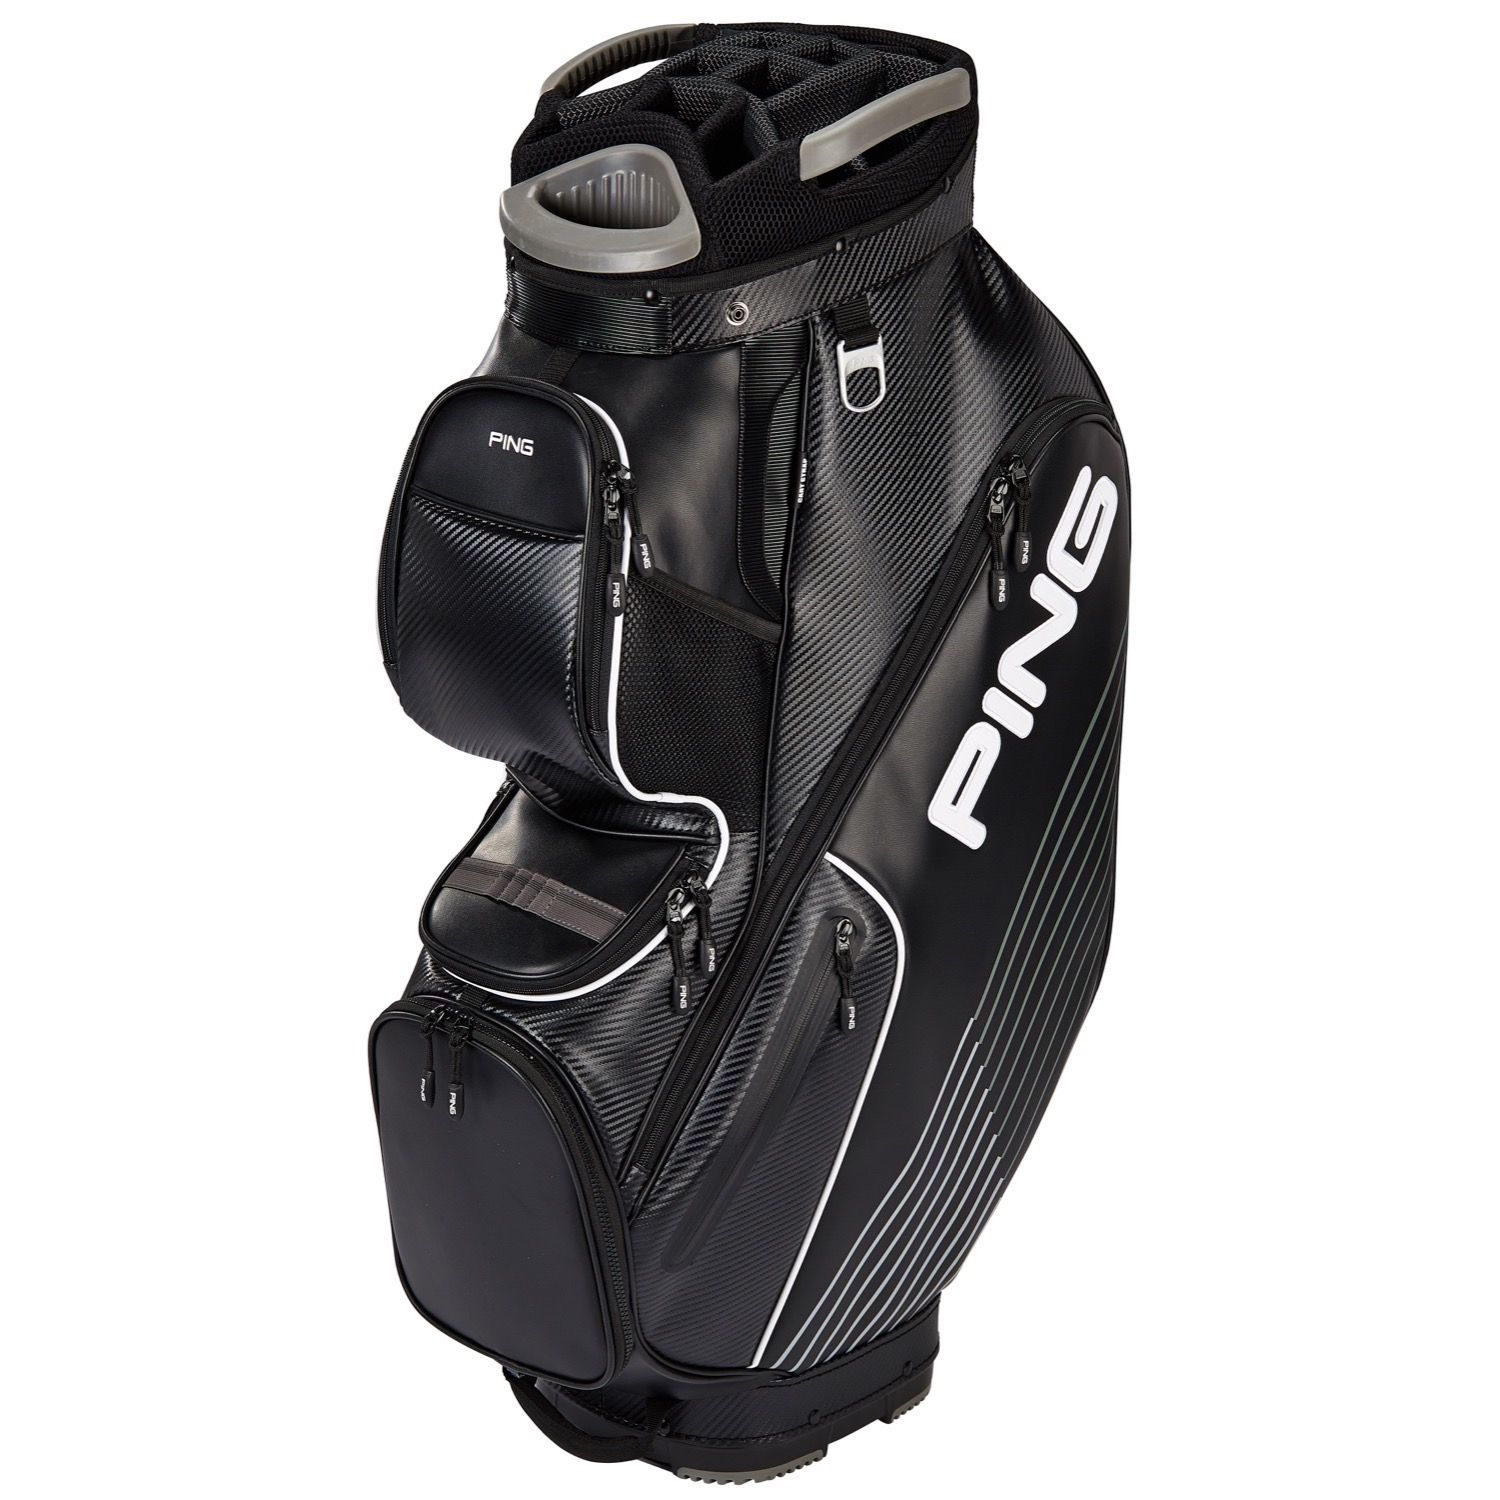 Ping Dlx Ii Golf Cart Bag Black Scottsdale